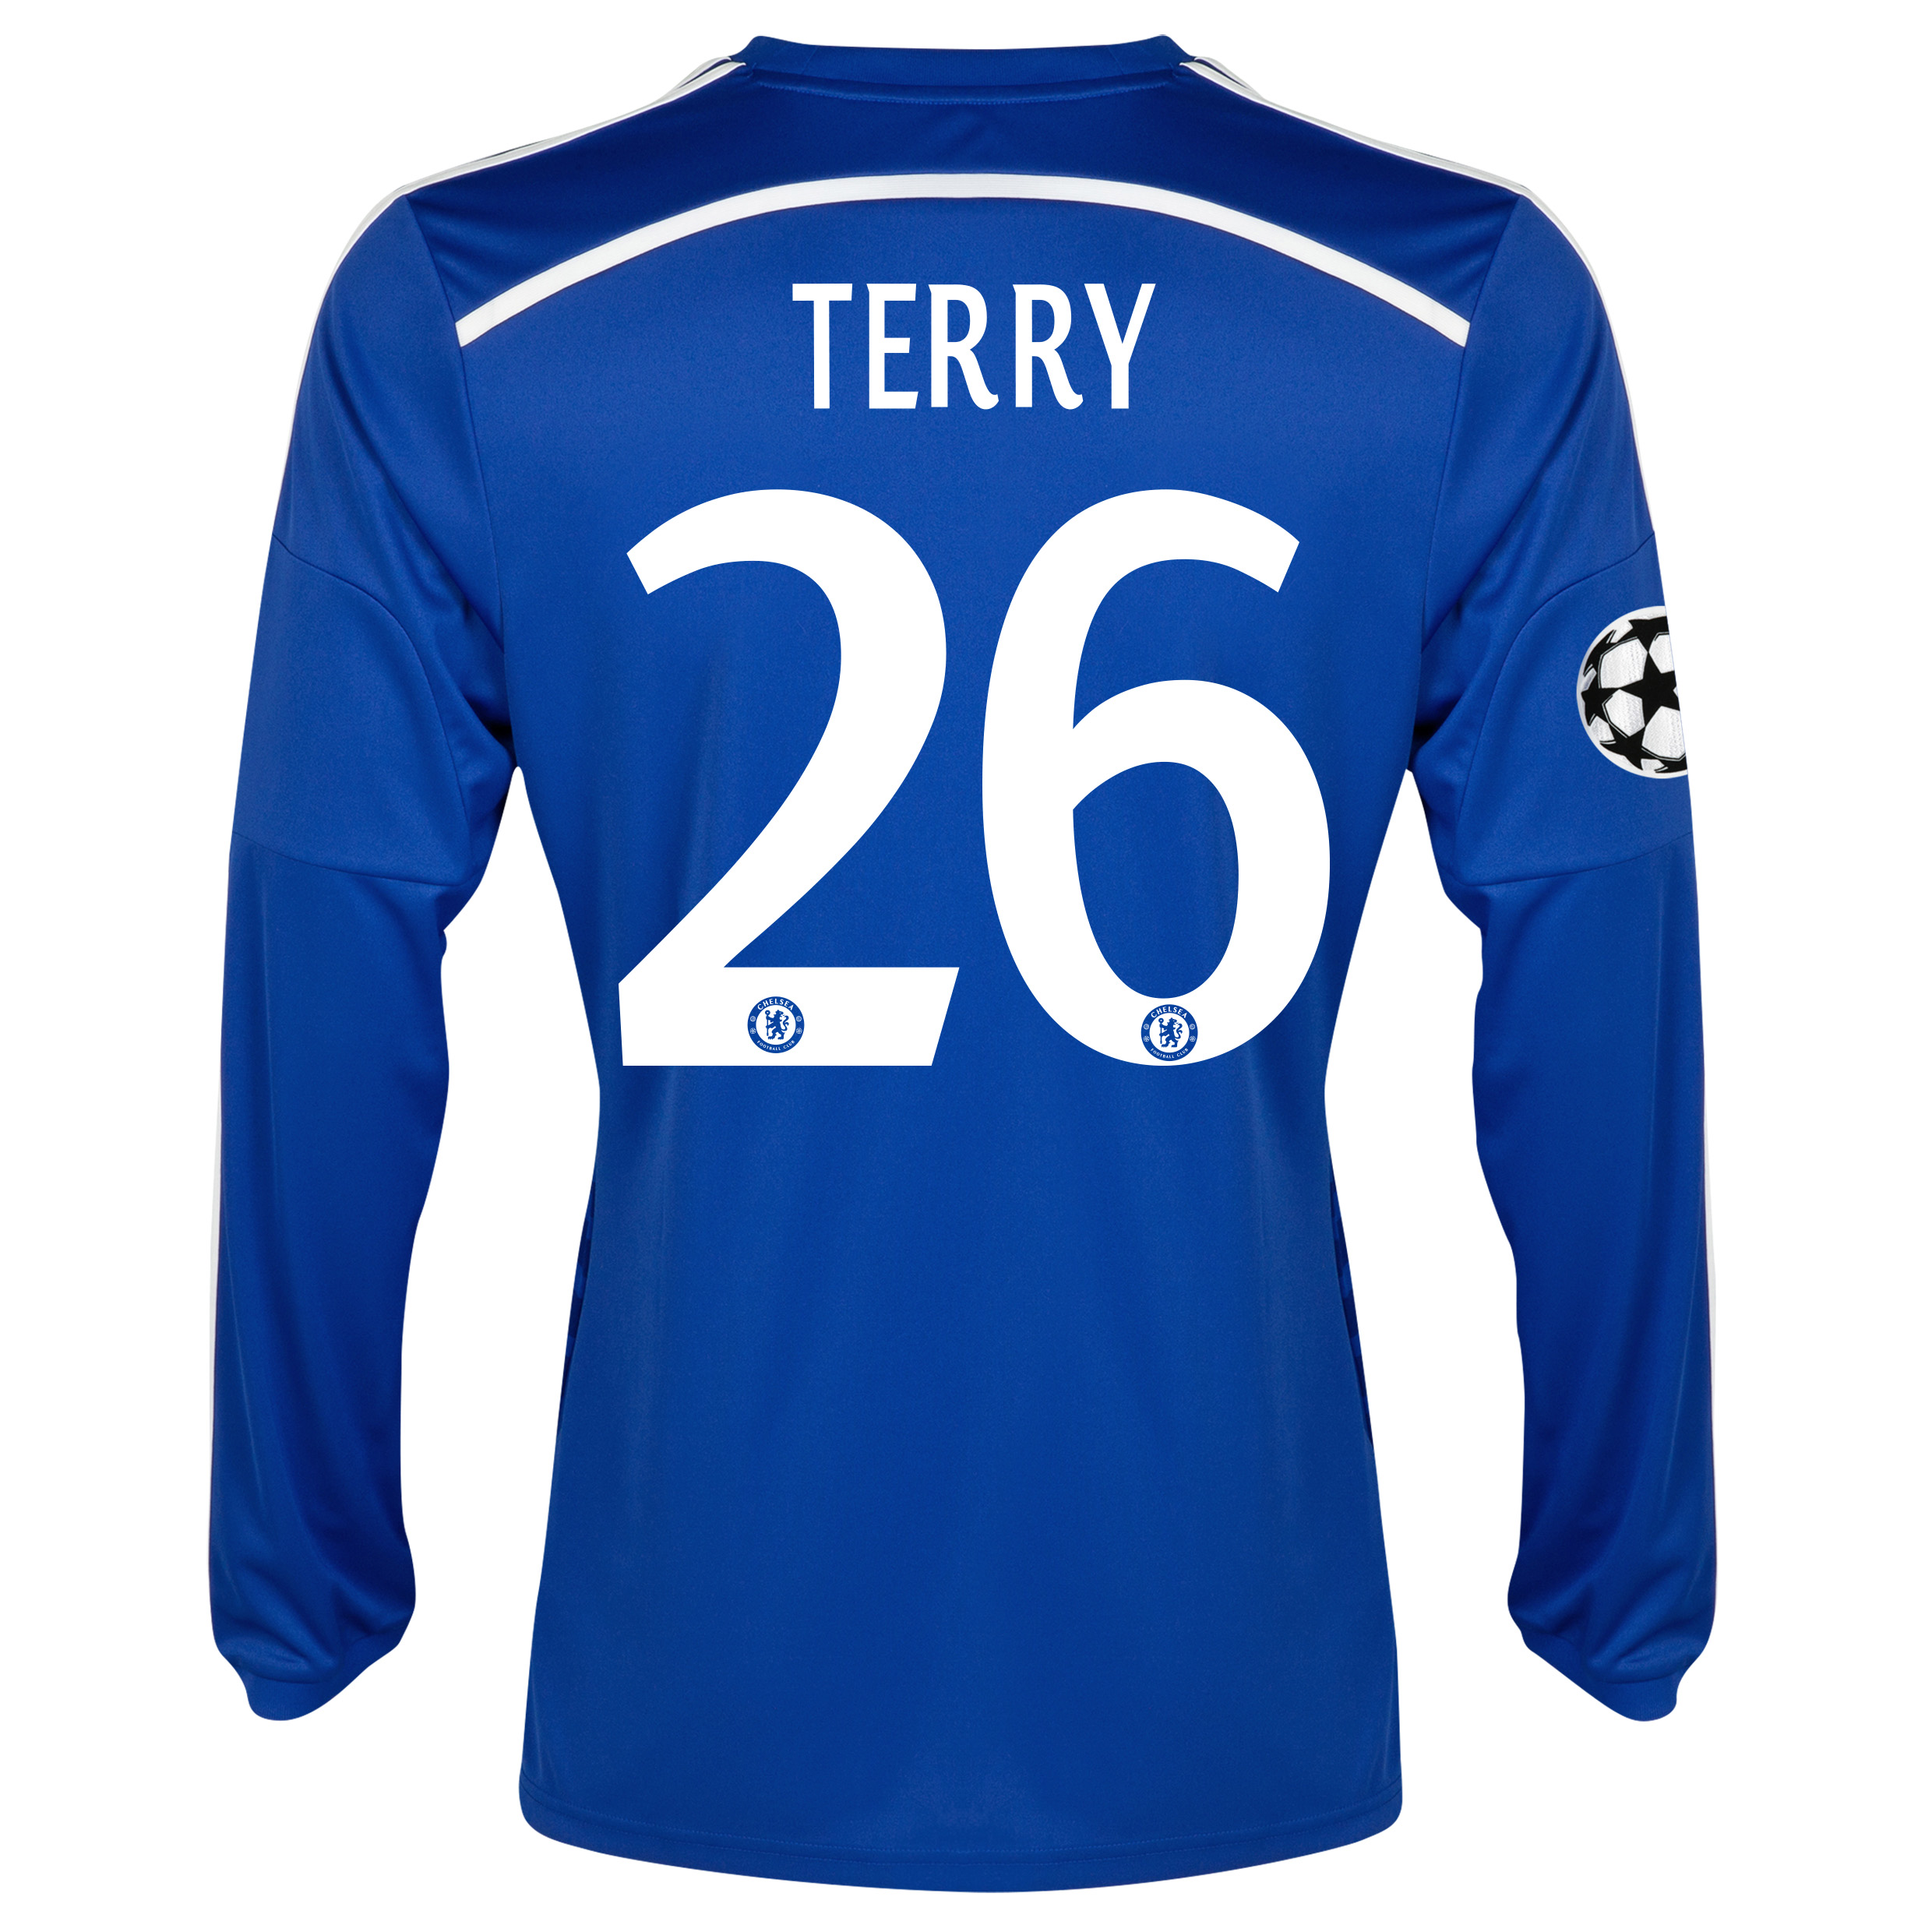 Chelsea UEFA Champions League Home Shirt 2014/15 - Long Sleeve - Kids Blue with Terry 26 printing